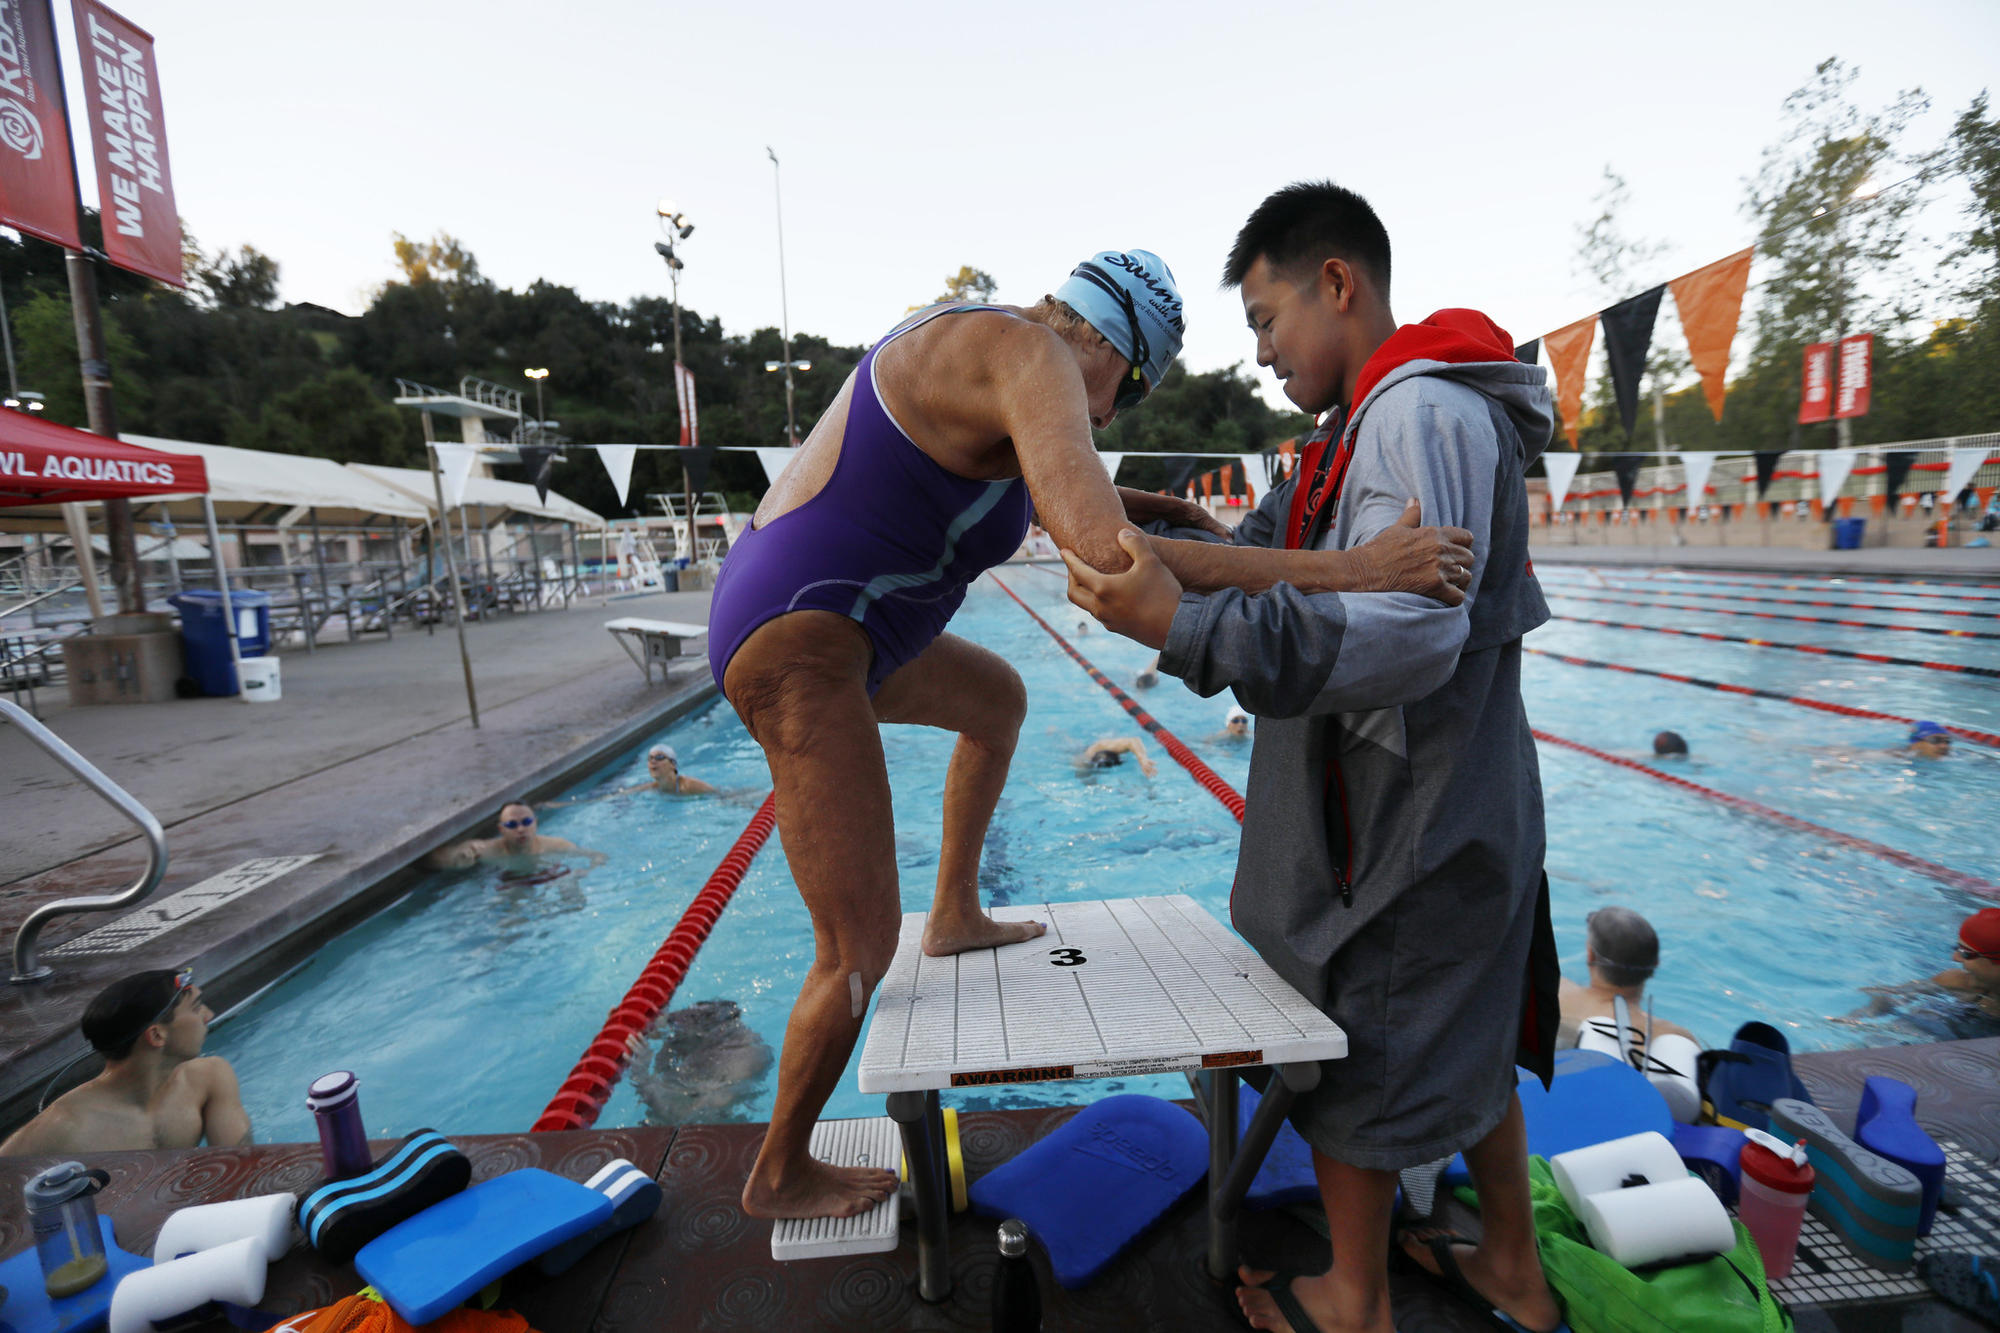 Late to the pool, 97-year-old swimming champion has since